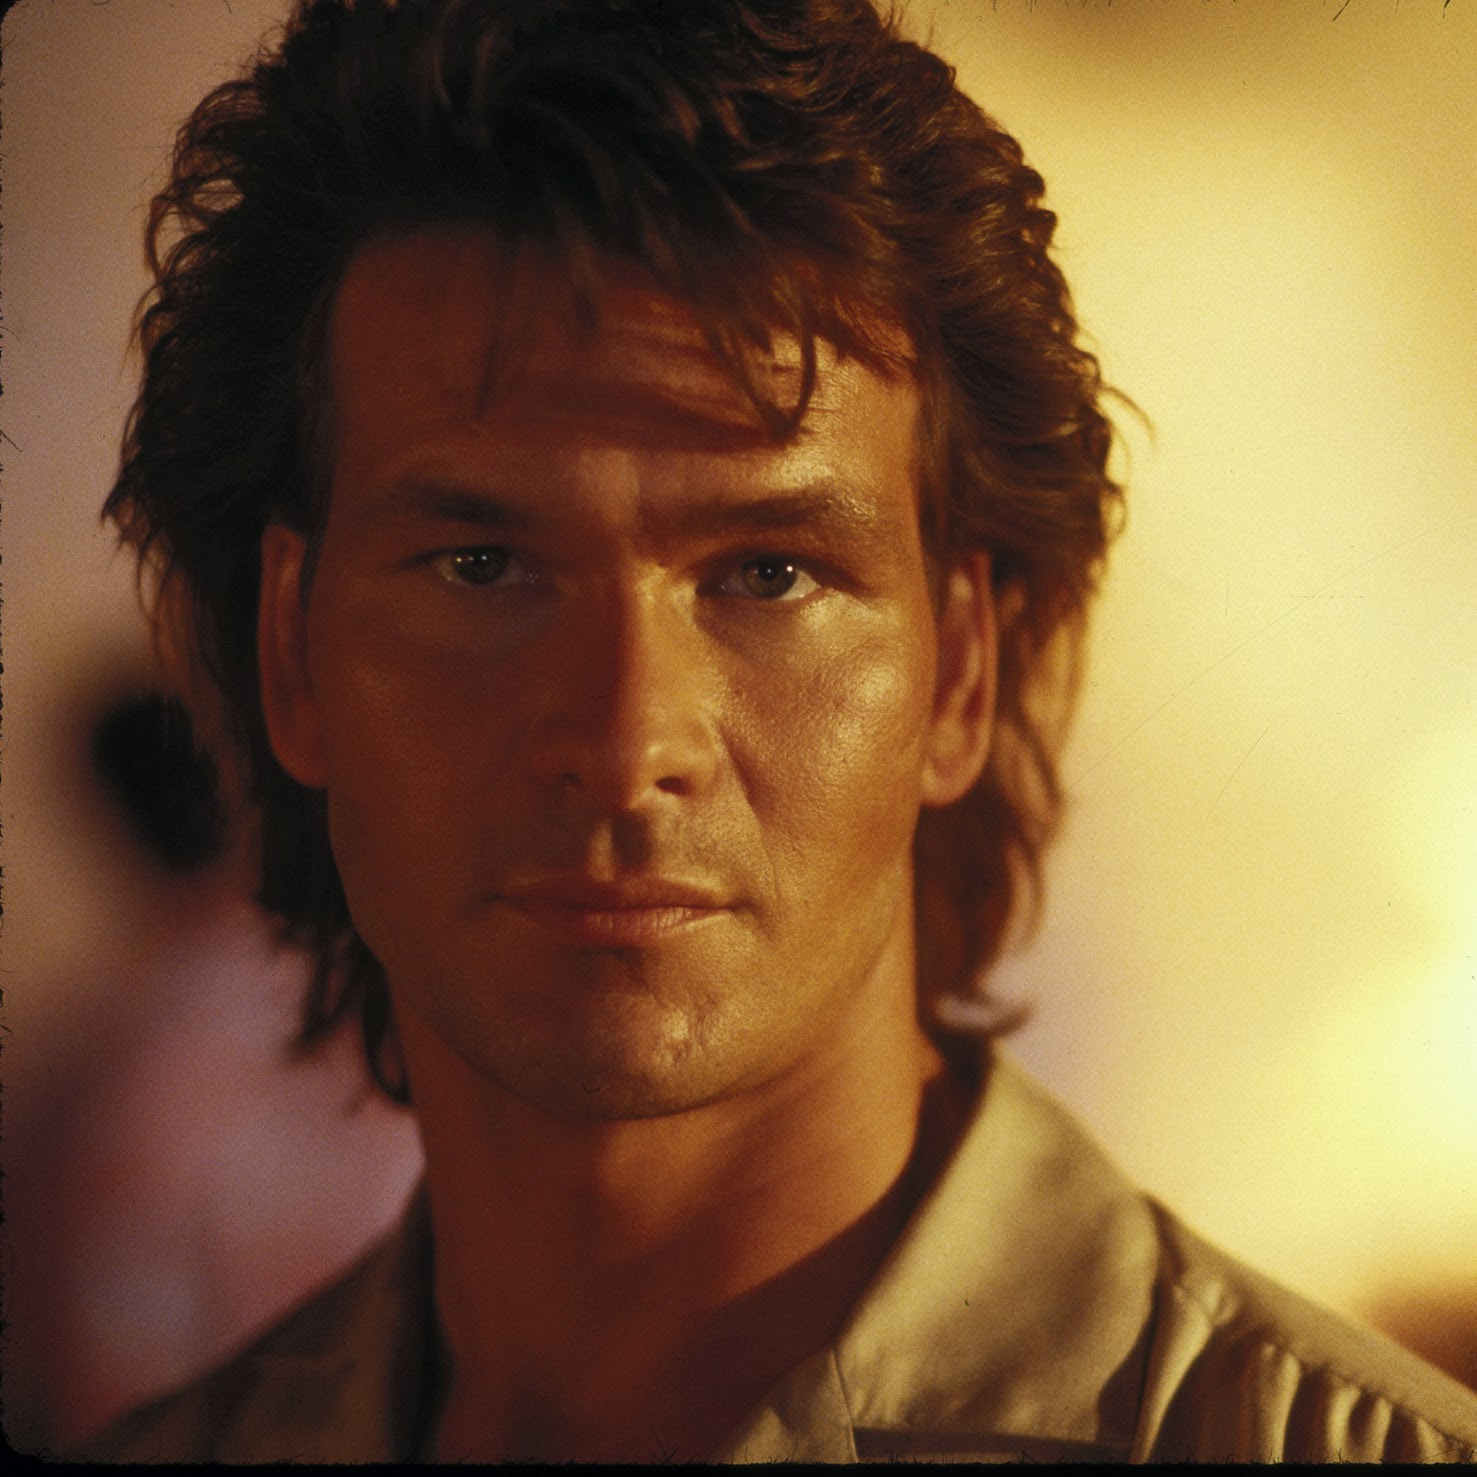 Patrick Swayze Roadhouse Wallpaper Did you know that road house